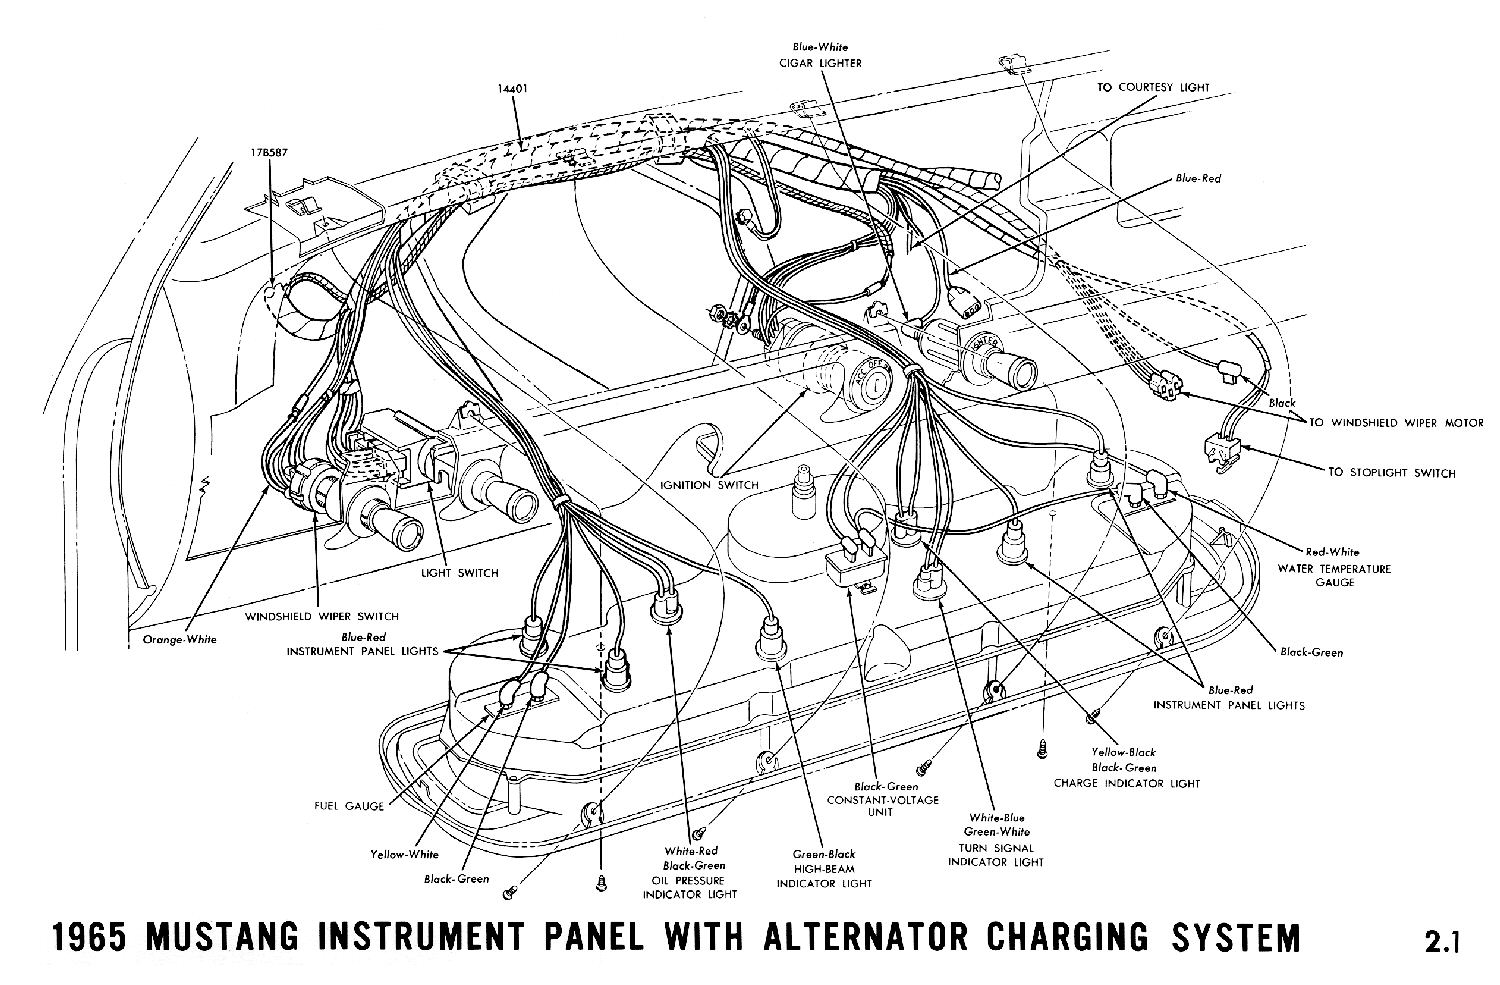 hight resolution of 1965 mustang wiring diagrams average joe restoration fuse panel for 2000 mustang gt 4 6l 1996